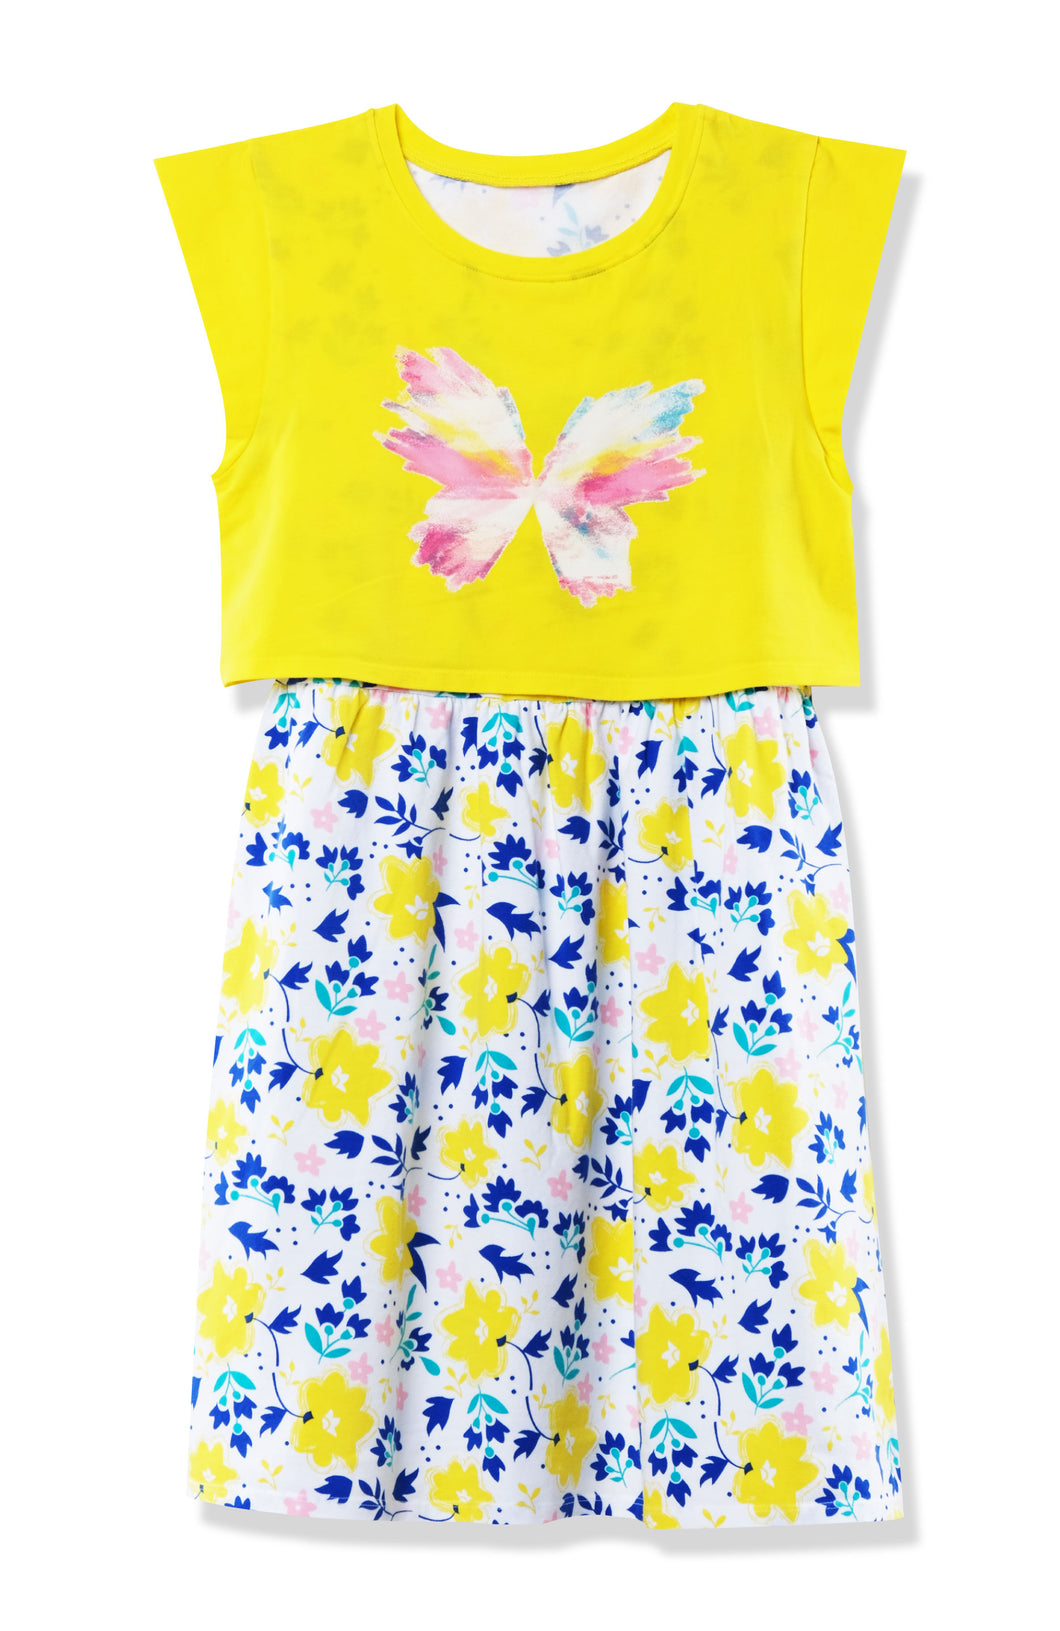 Emosewa Girls Pullover Casual Cap Sleeve Dress with Butterfly Graphic